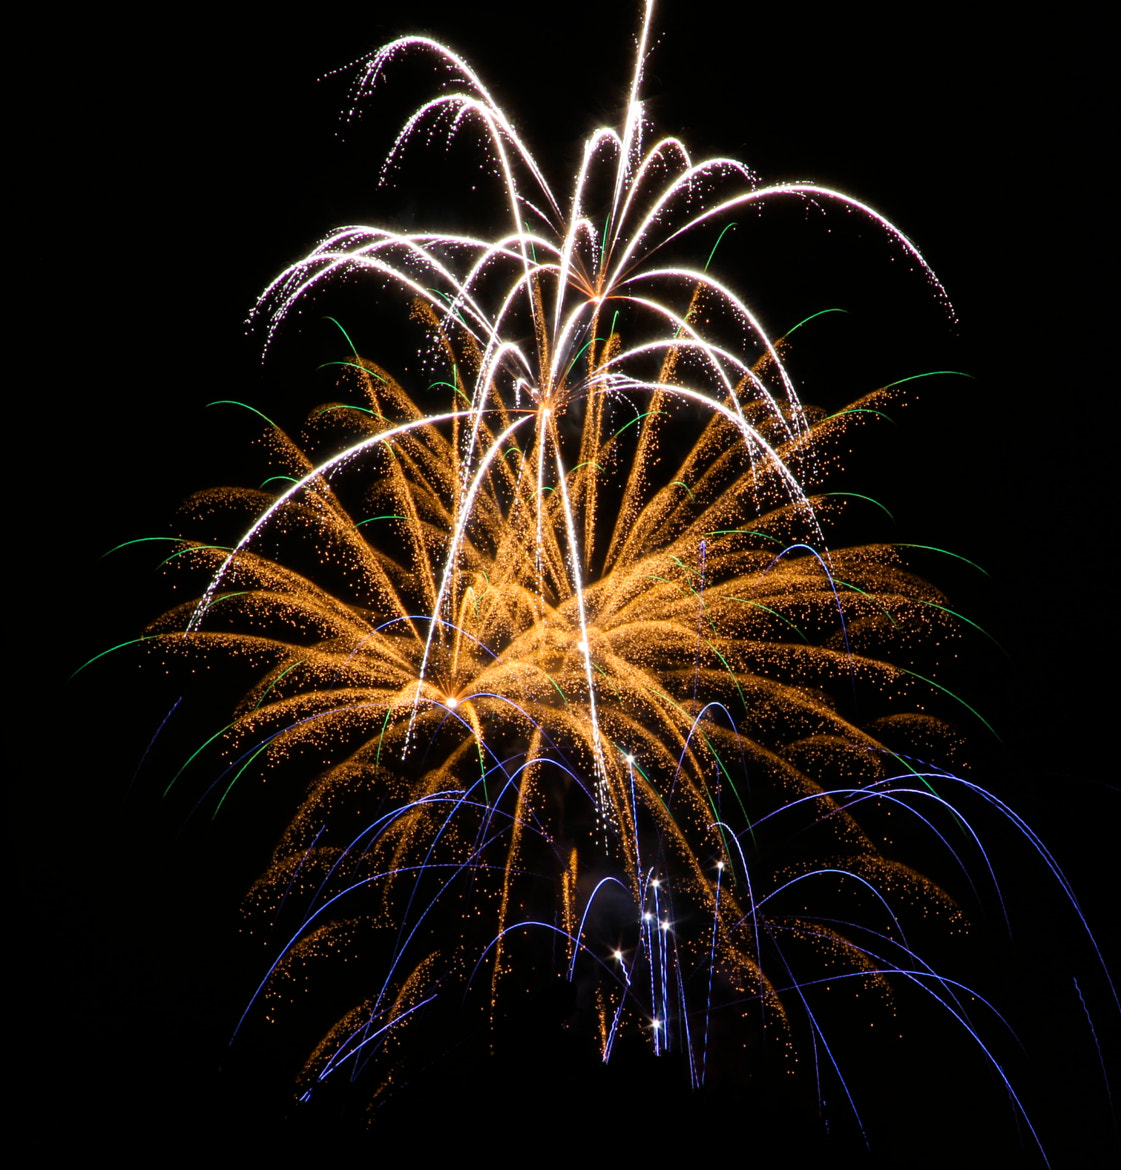 Photograph Fireworks 1 by Paul Marto on 500px